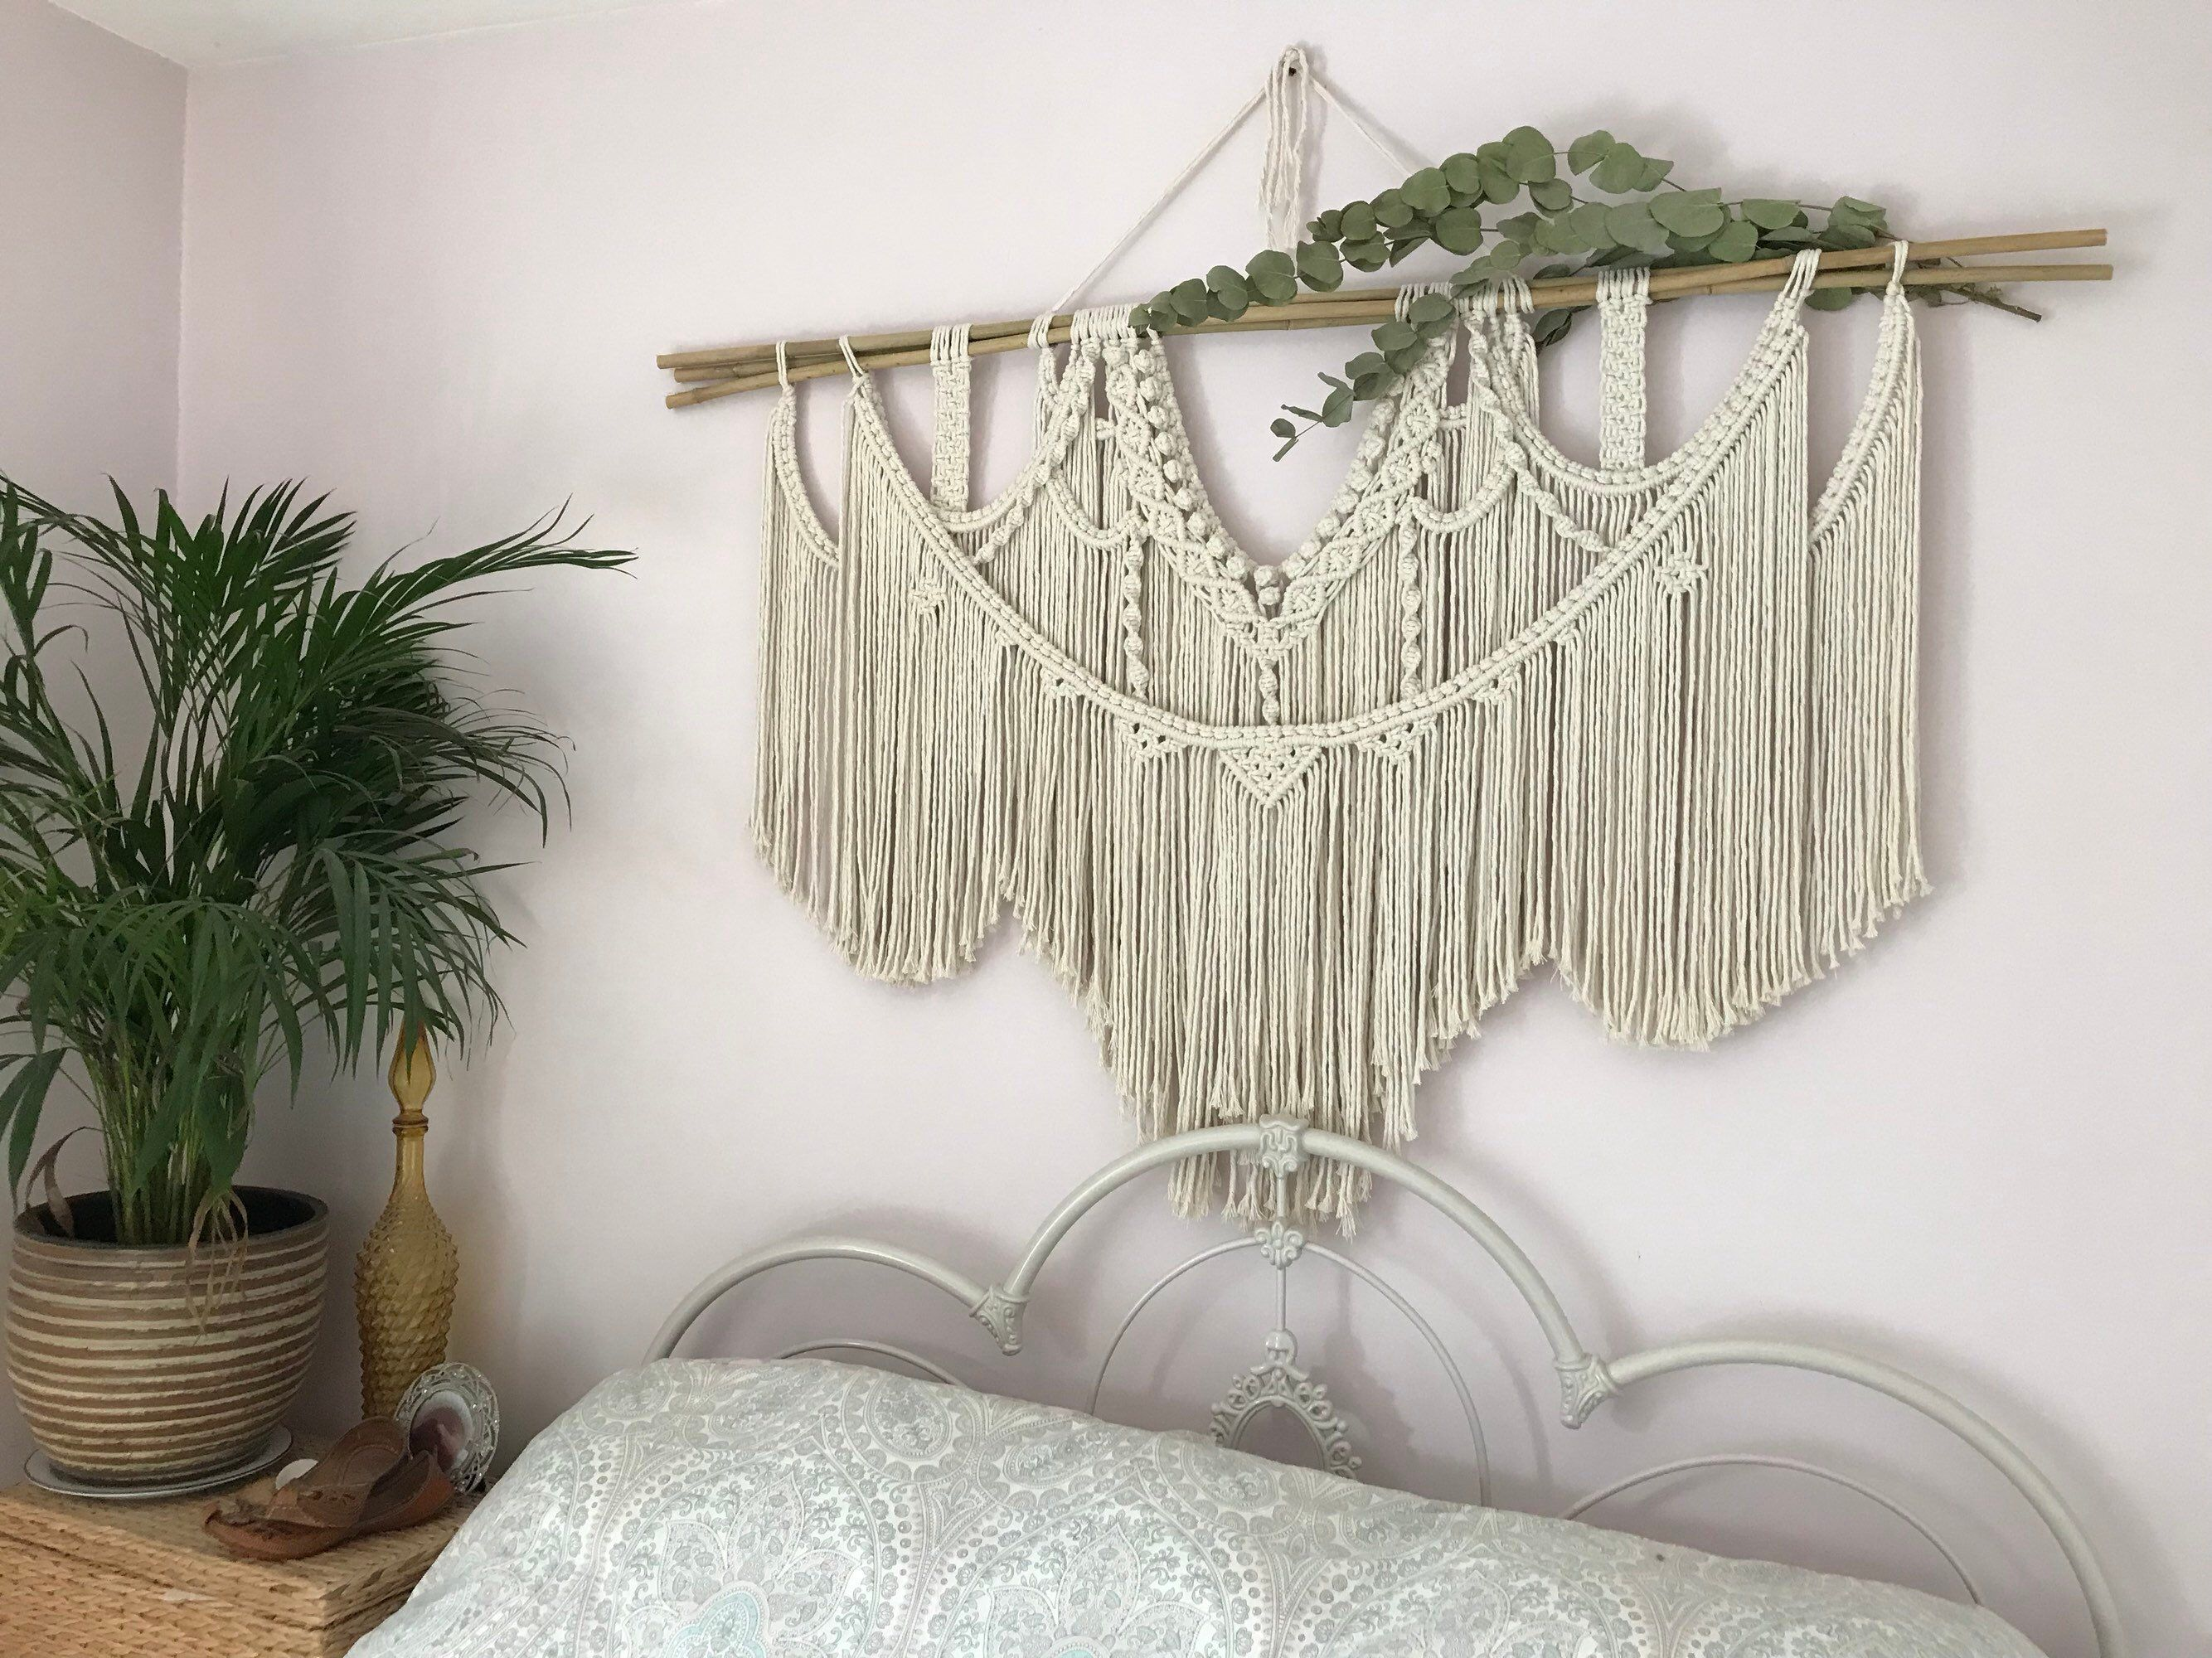 Excited to share this item from my etsy shop large macrame wall hanging housewares homedecor macrame wedding wallart fibreart macramebackdrop